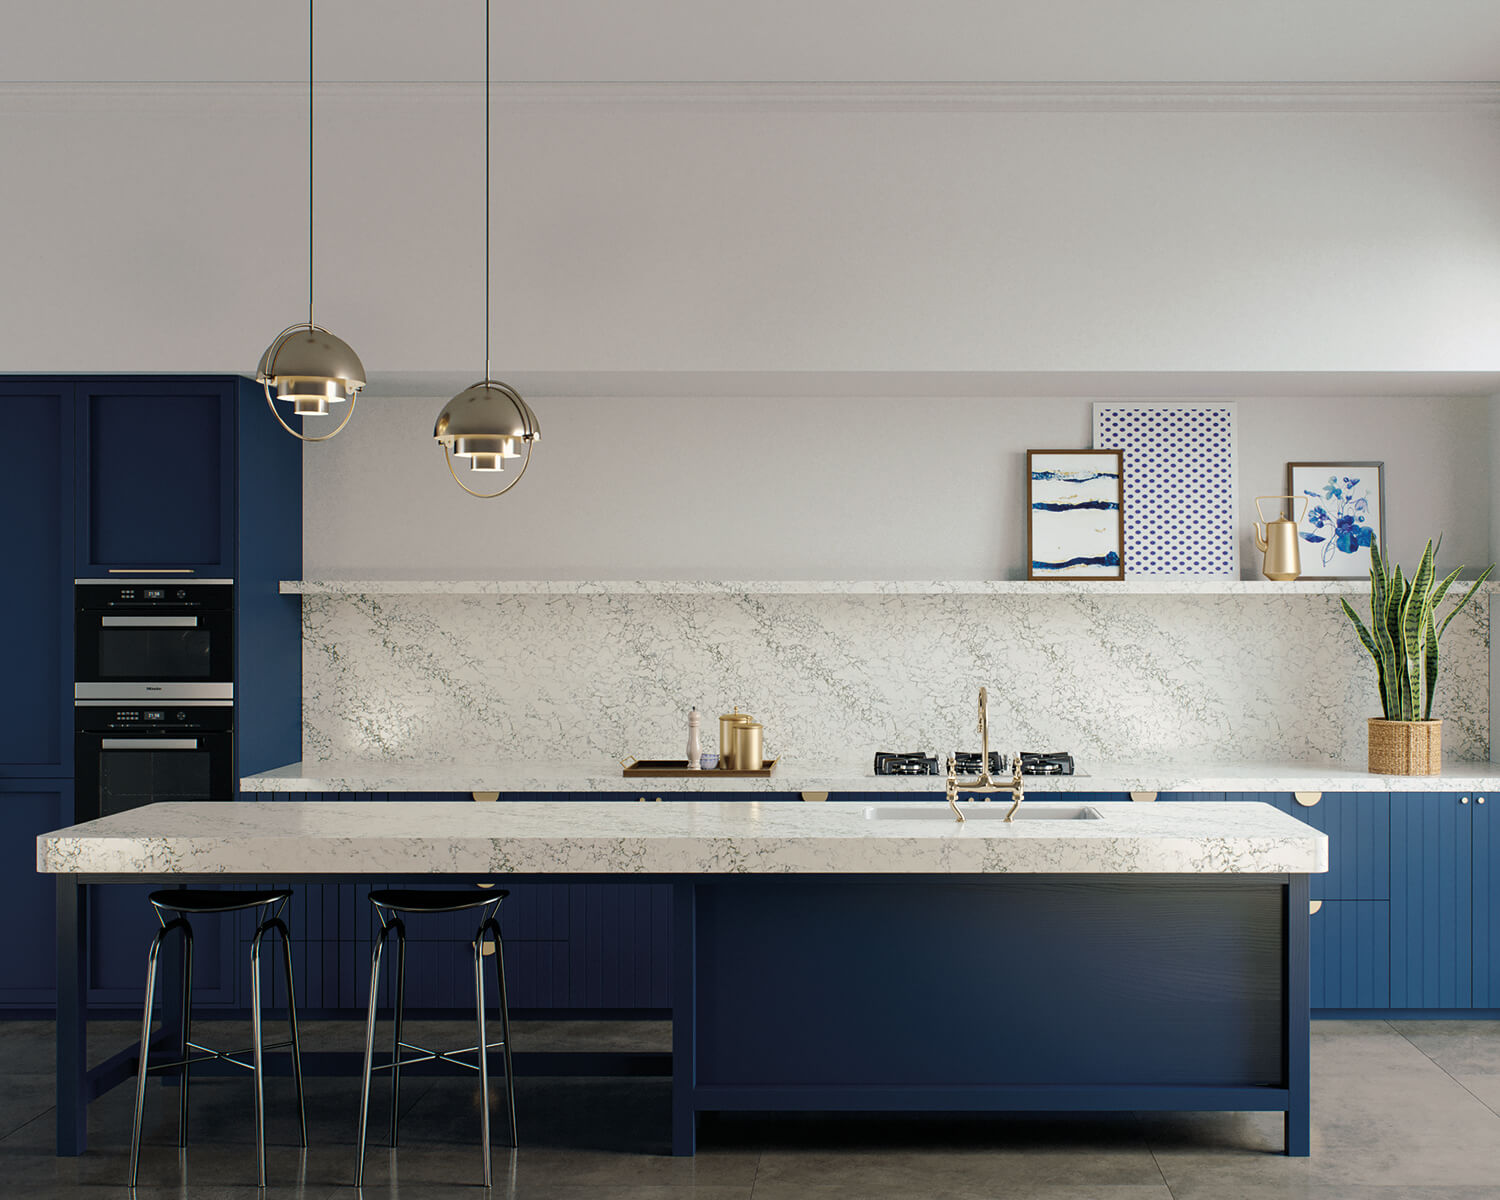 Kitchen with blue island and cabinets, and white Caesarstone countertop and backsplash